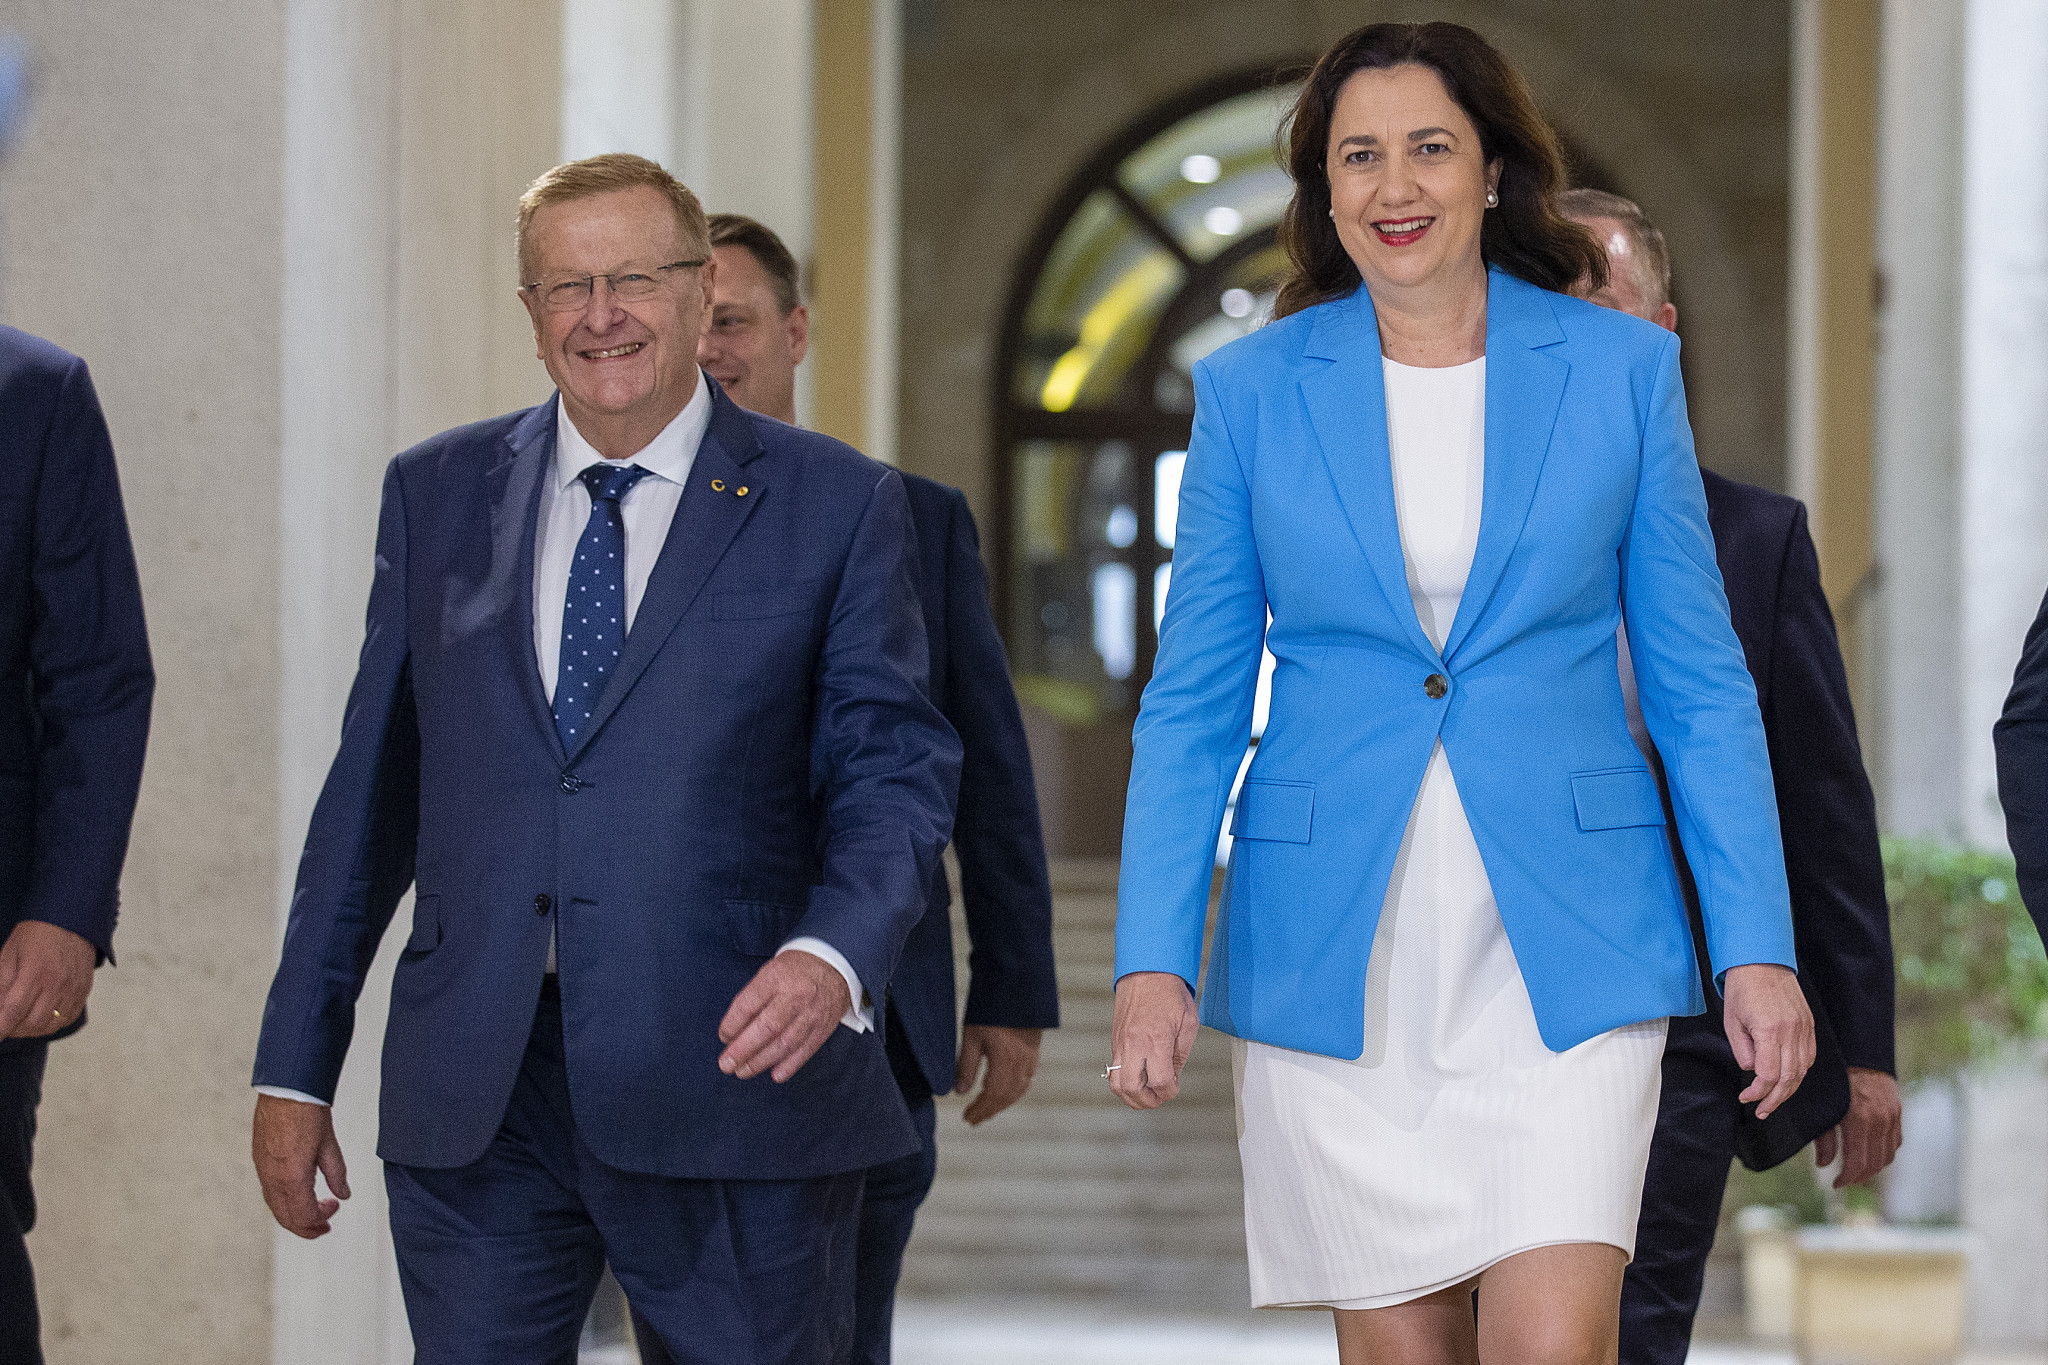 Queensland Premier Annastacia Palaszczuk, right, has submited priority guarantees to IOC President Thomas Bach ©Getty Images